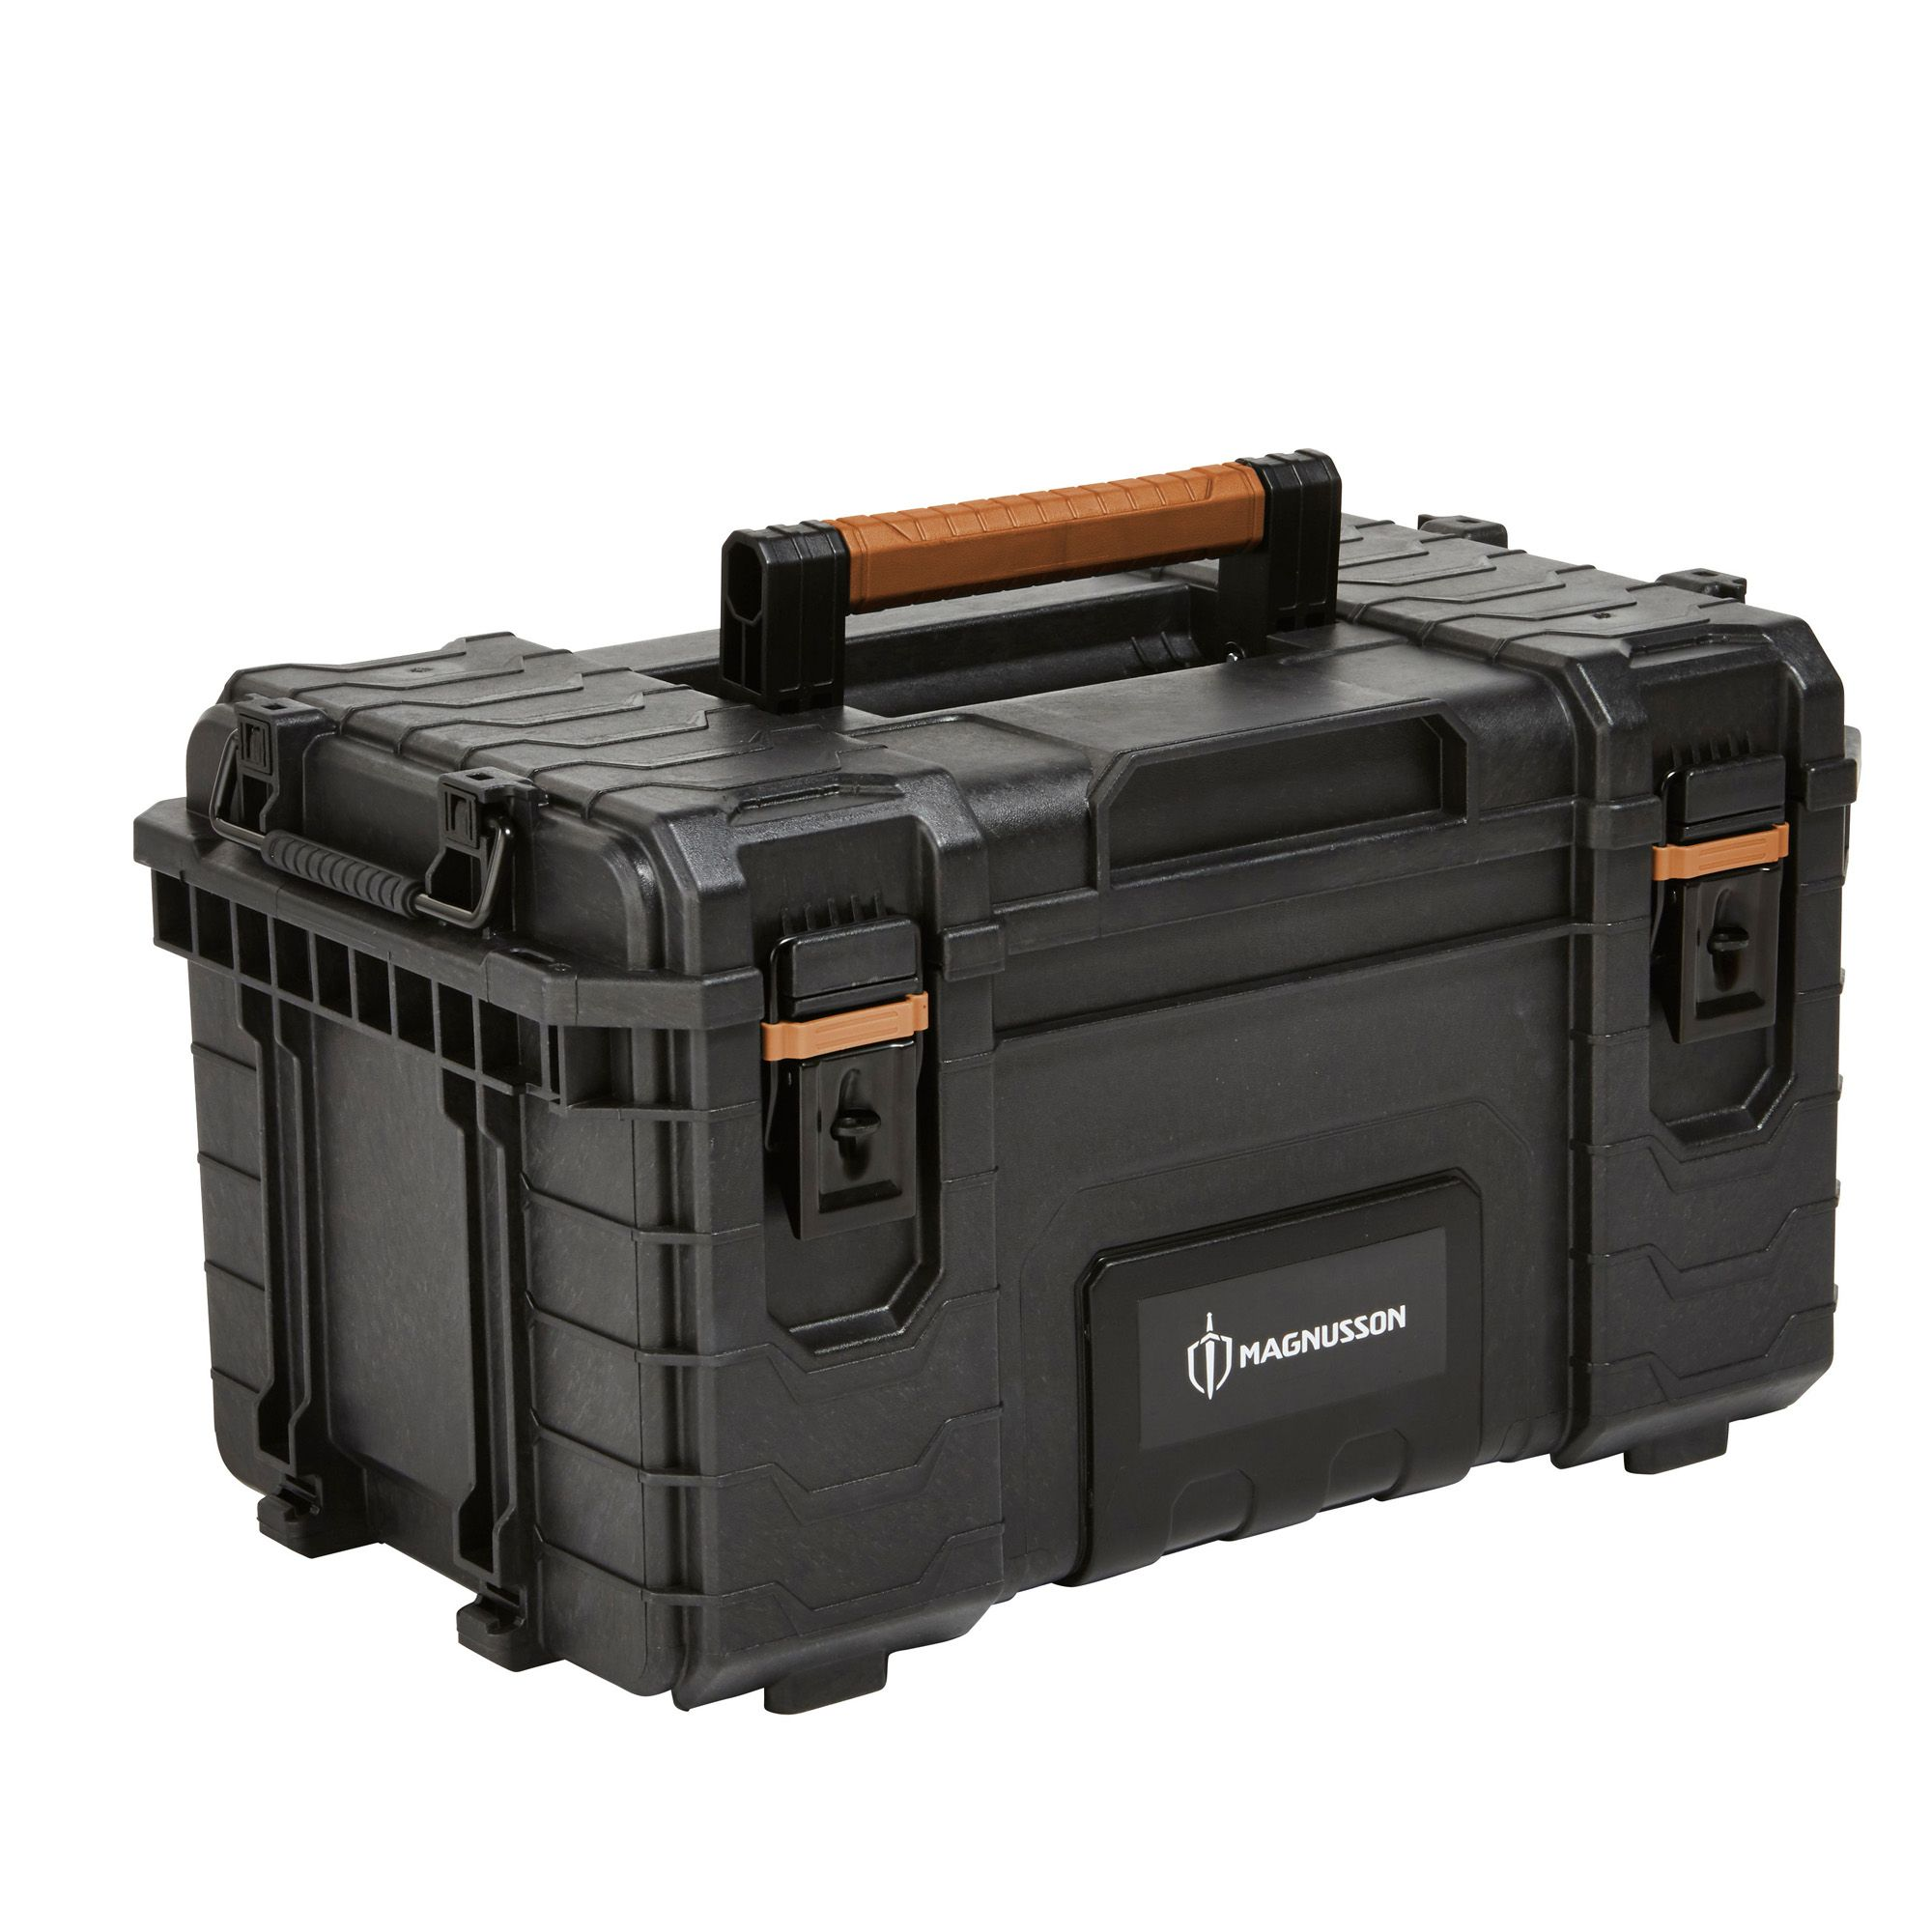 Magnusson Site System 13 Quot Tool Chest Departments Diy